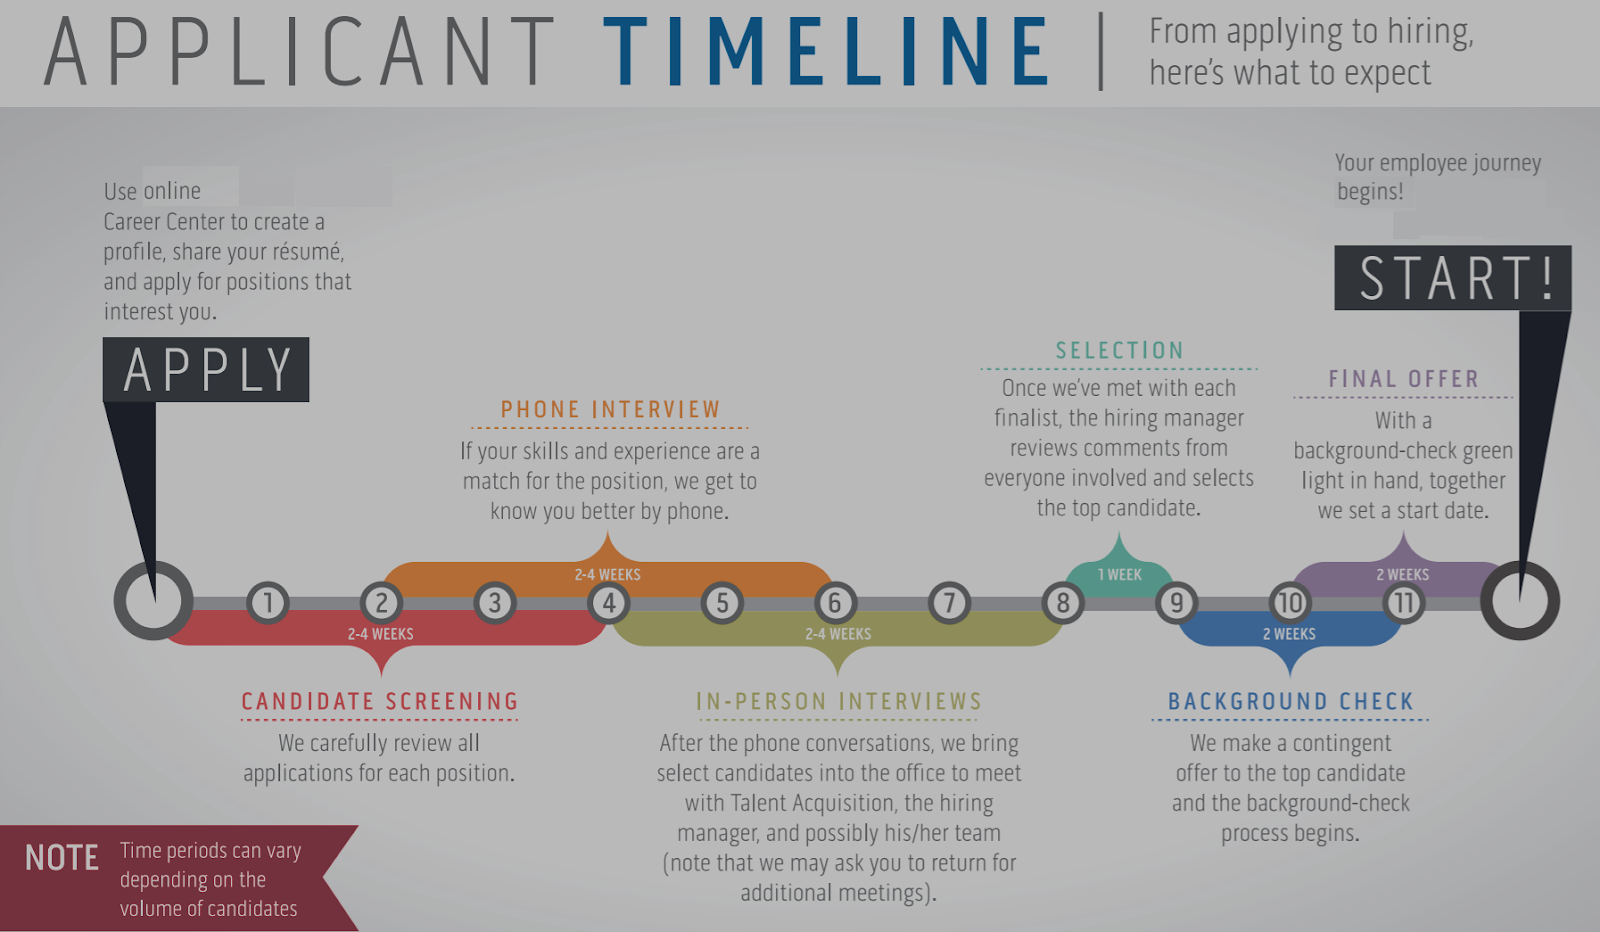 Timeline and Process of Acquiring a job - From filling an